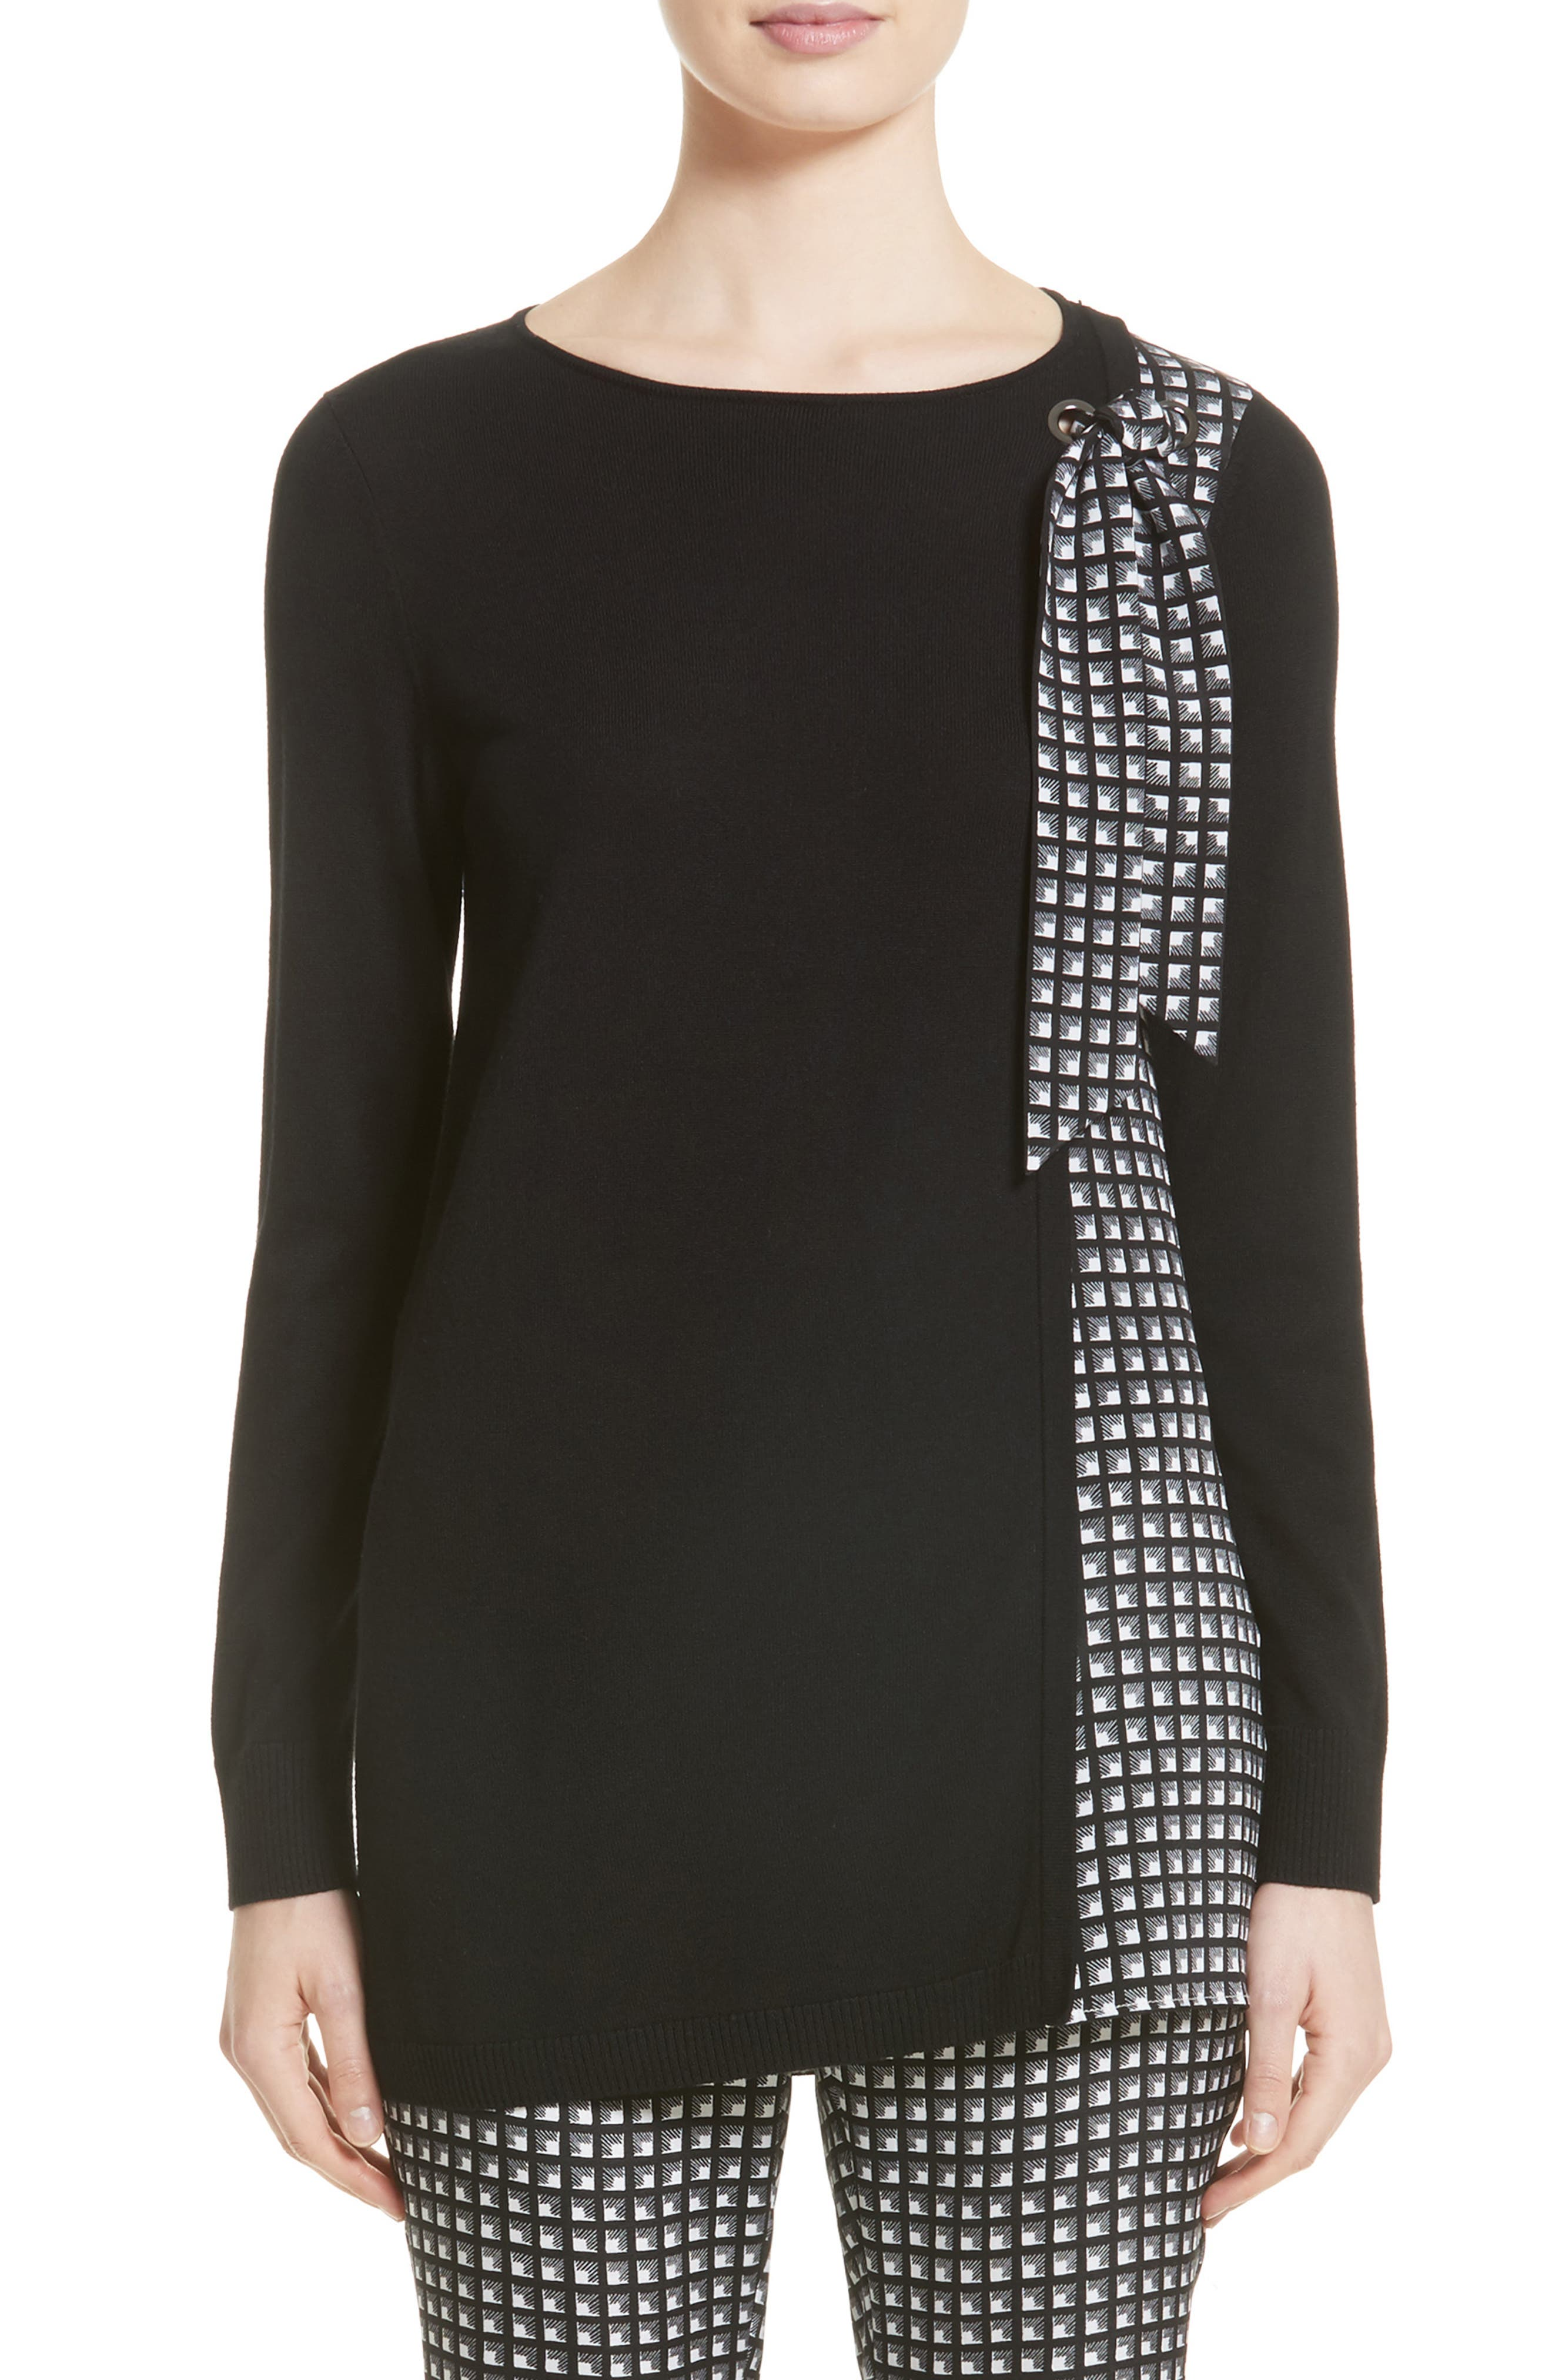 Alternate Image 1 Selected - St. John Collection Asymmetrical Jersey Knit Sweater